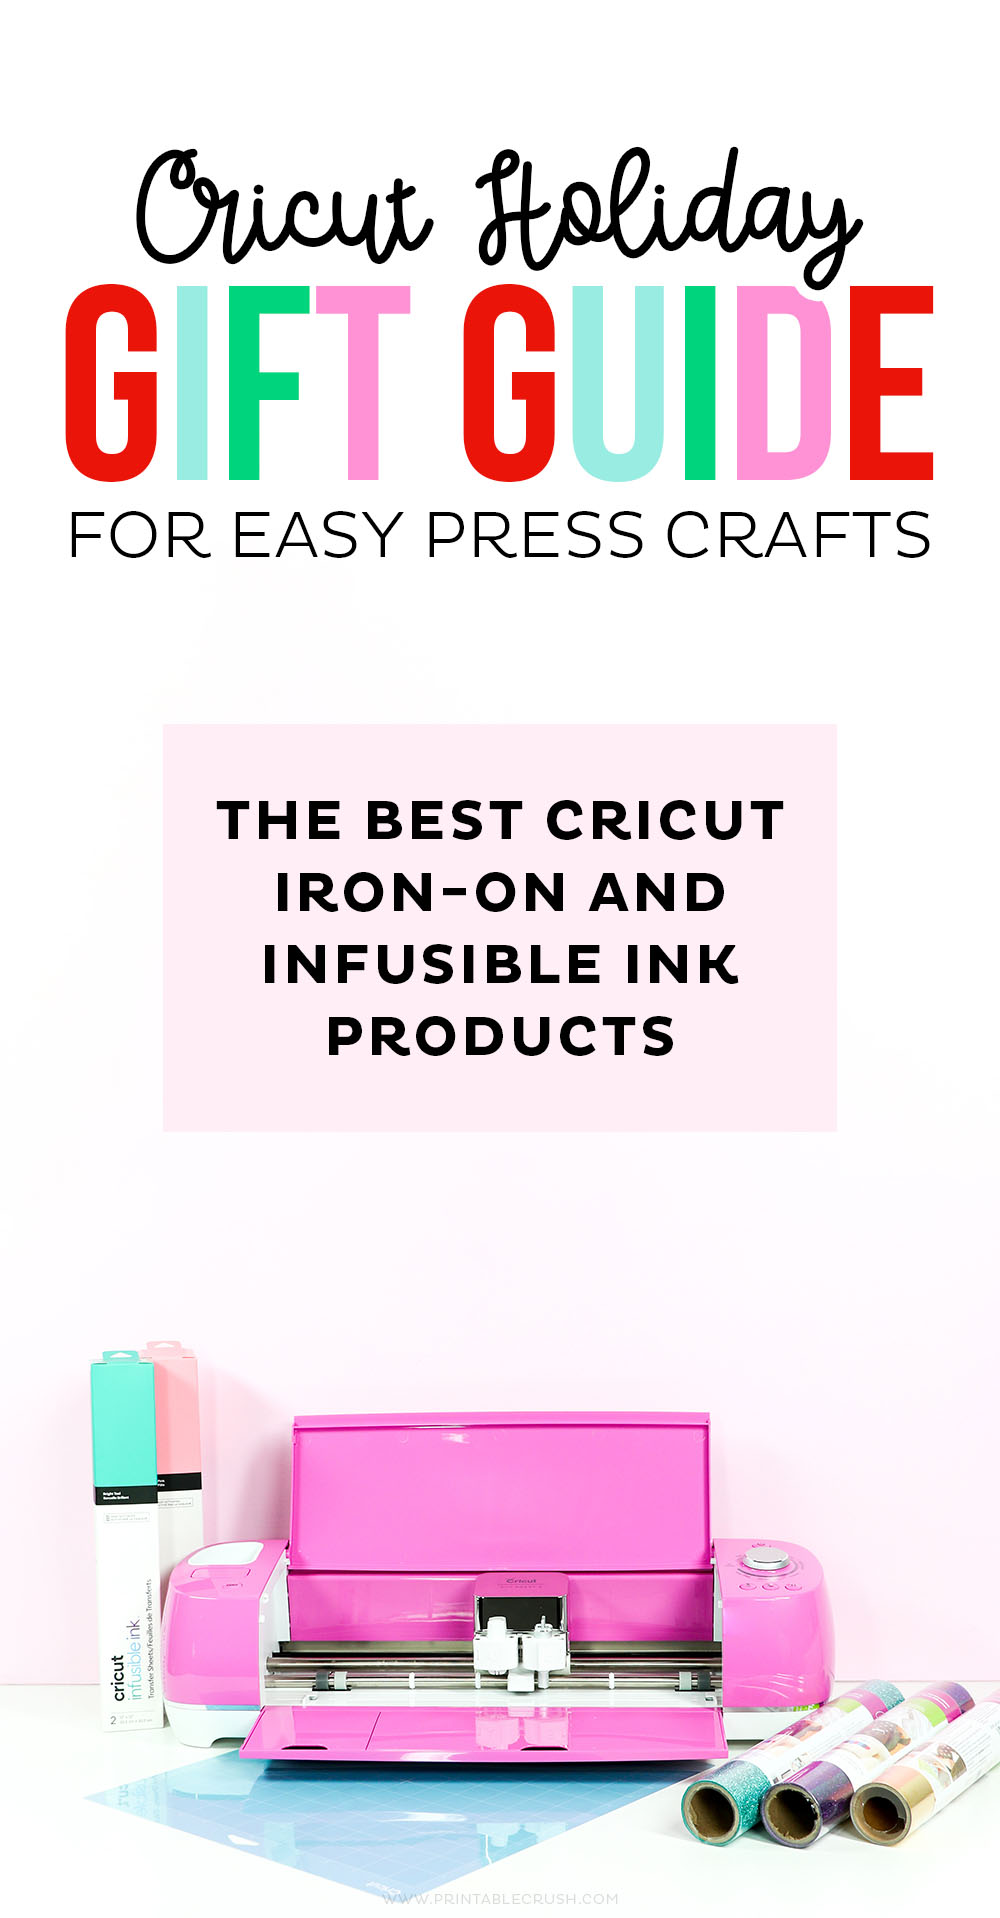 Holiday Gift Guide for Cricut Easypress 2 Crafts